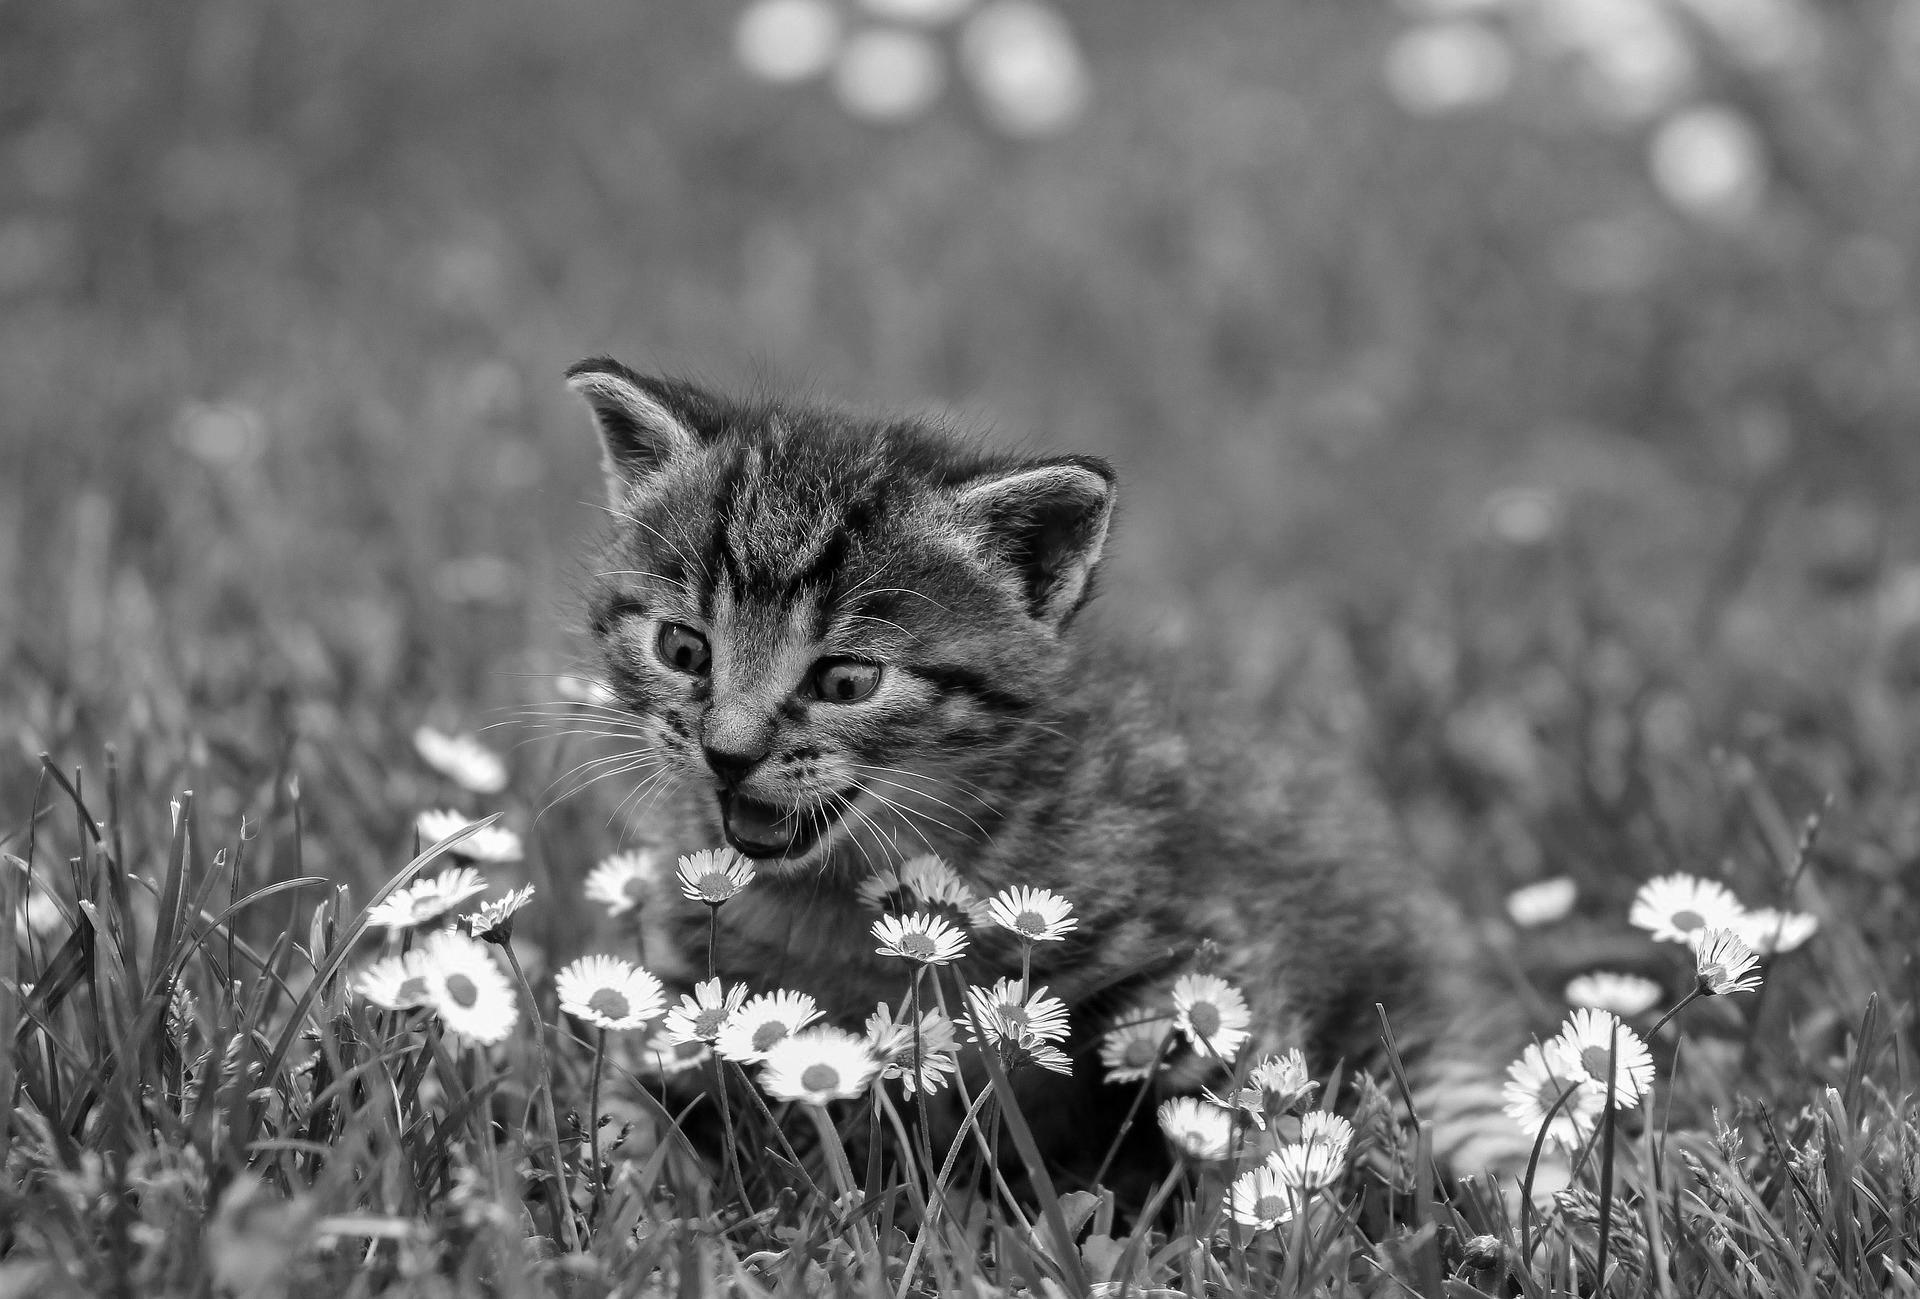 A not-great grayscale version of the kitty.